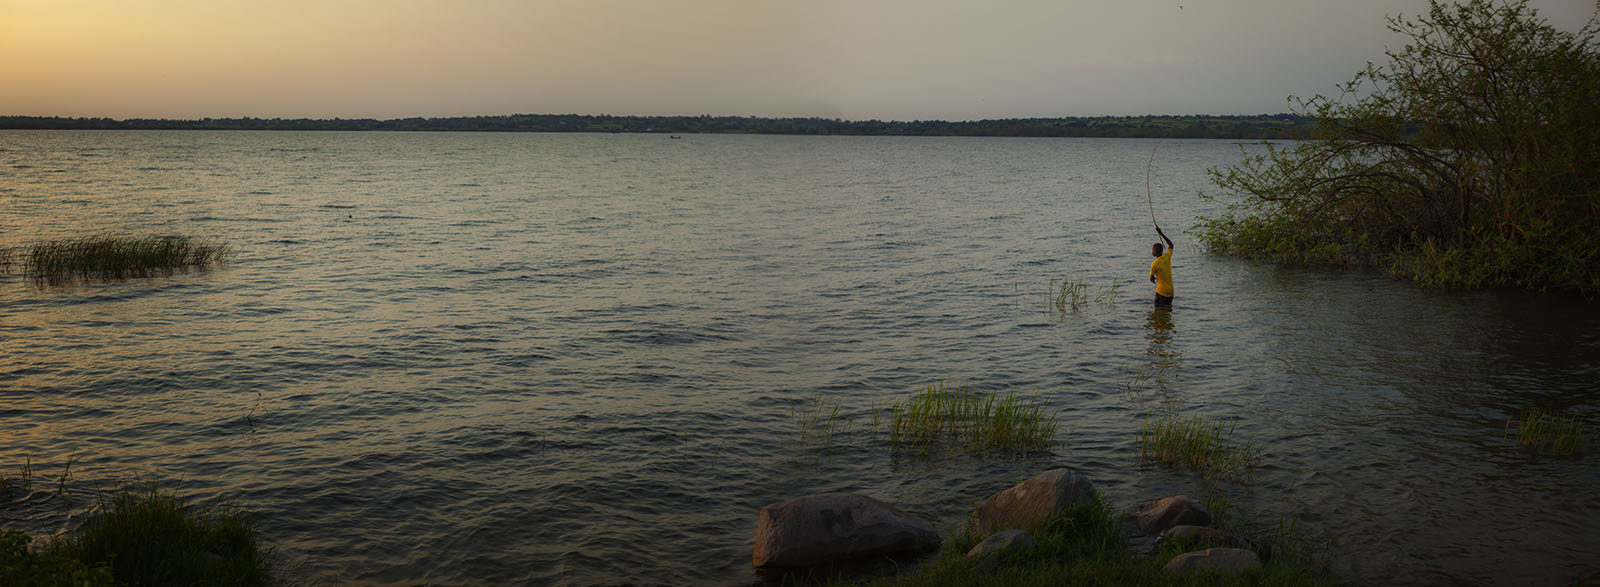 lake Victoria fishing pano 151116 (1)